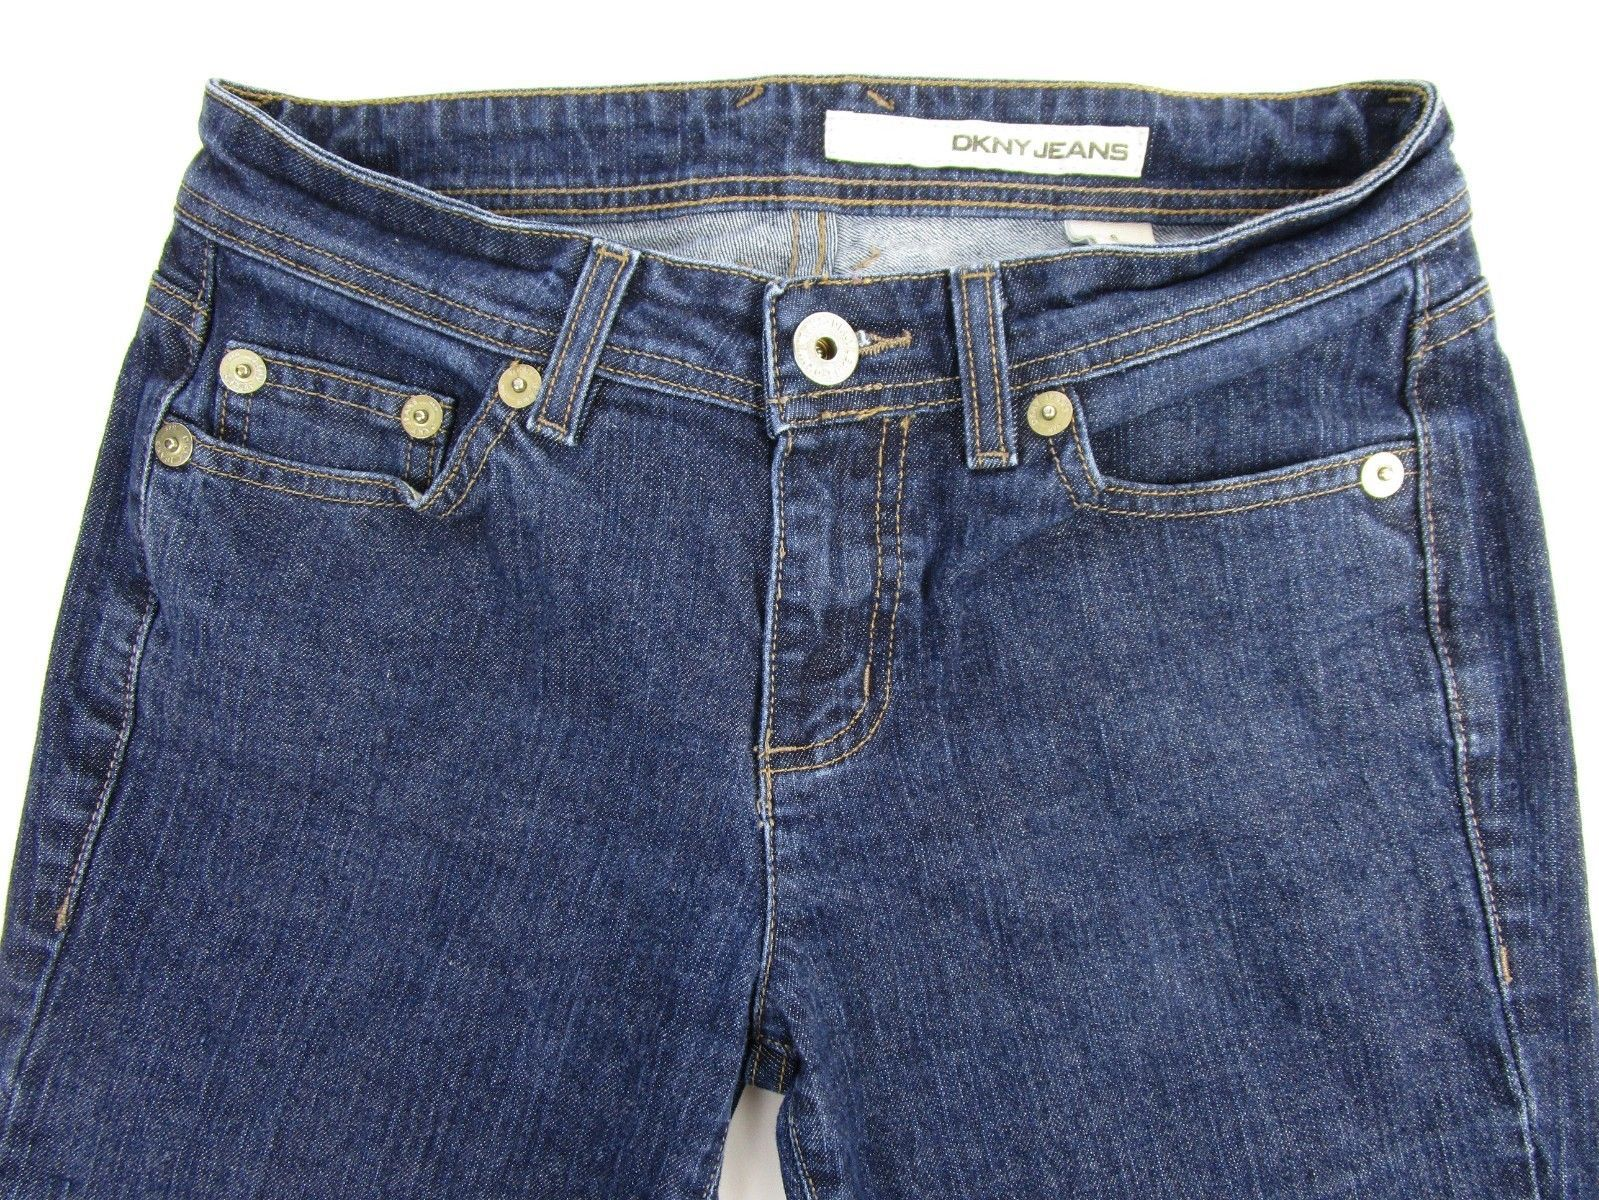 "Primary image for DKNY Jeans Womens Denim Blue Straight Leg Size 6 Waist 30"" Inseam 31"" 9 EUC"